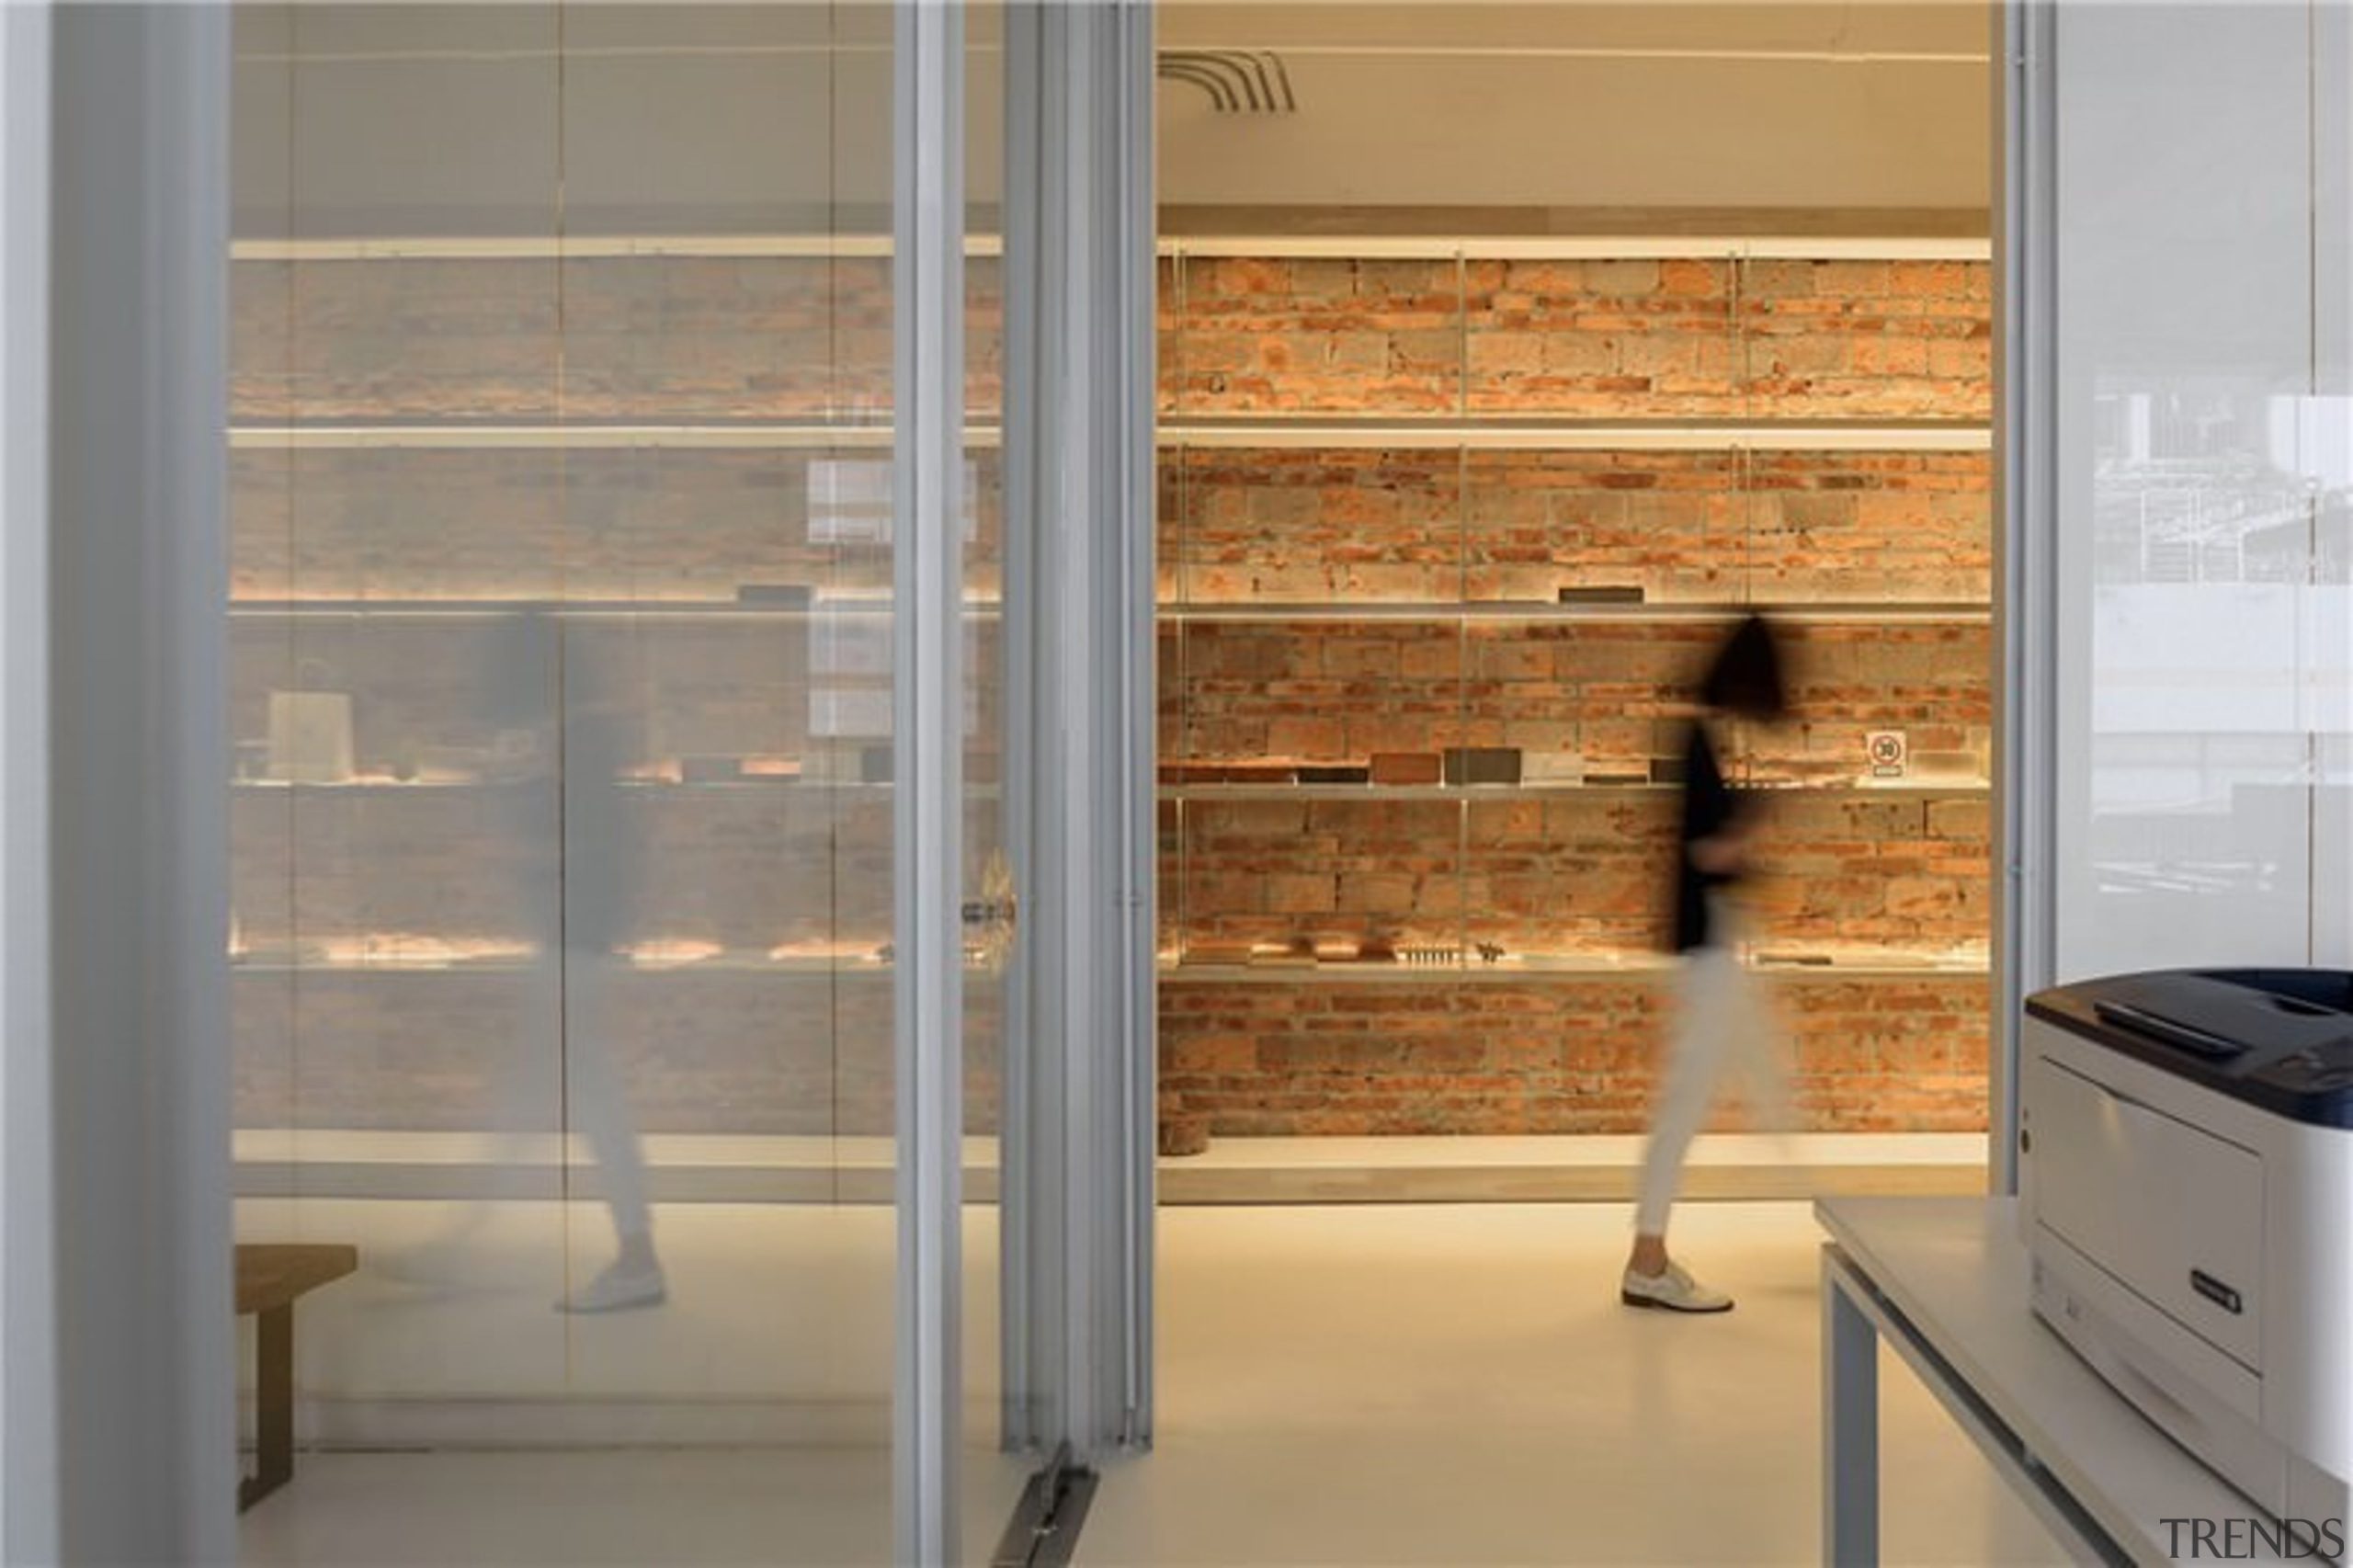 A brick wall serves as a place to cabinetry, display case, floor, interior design, window, gray